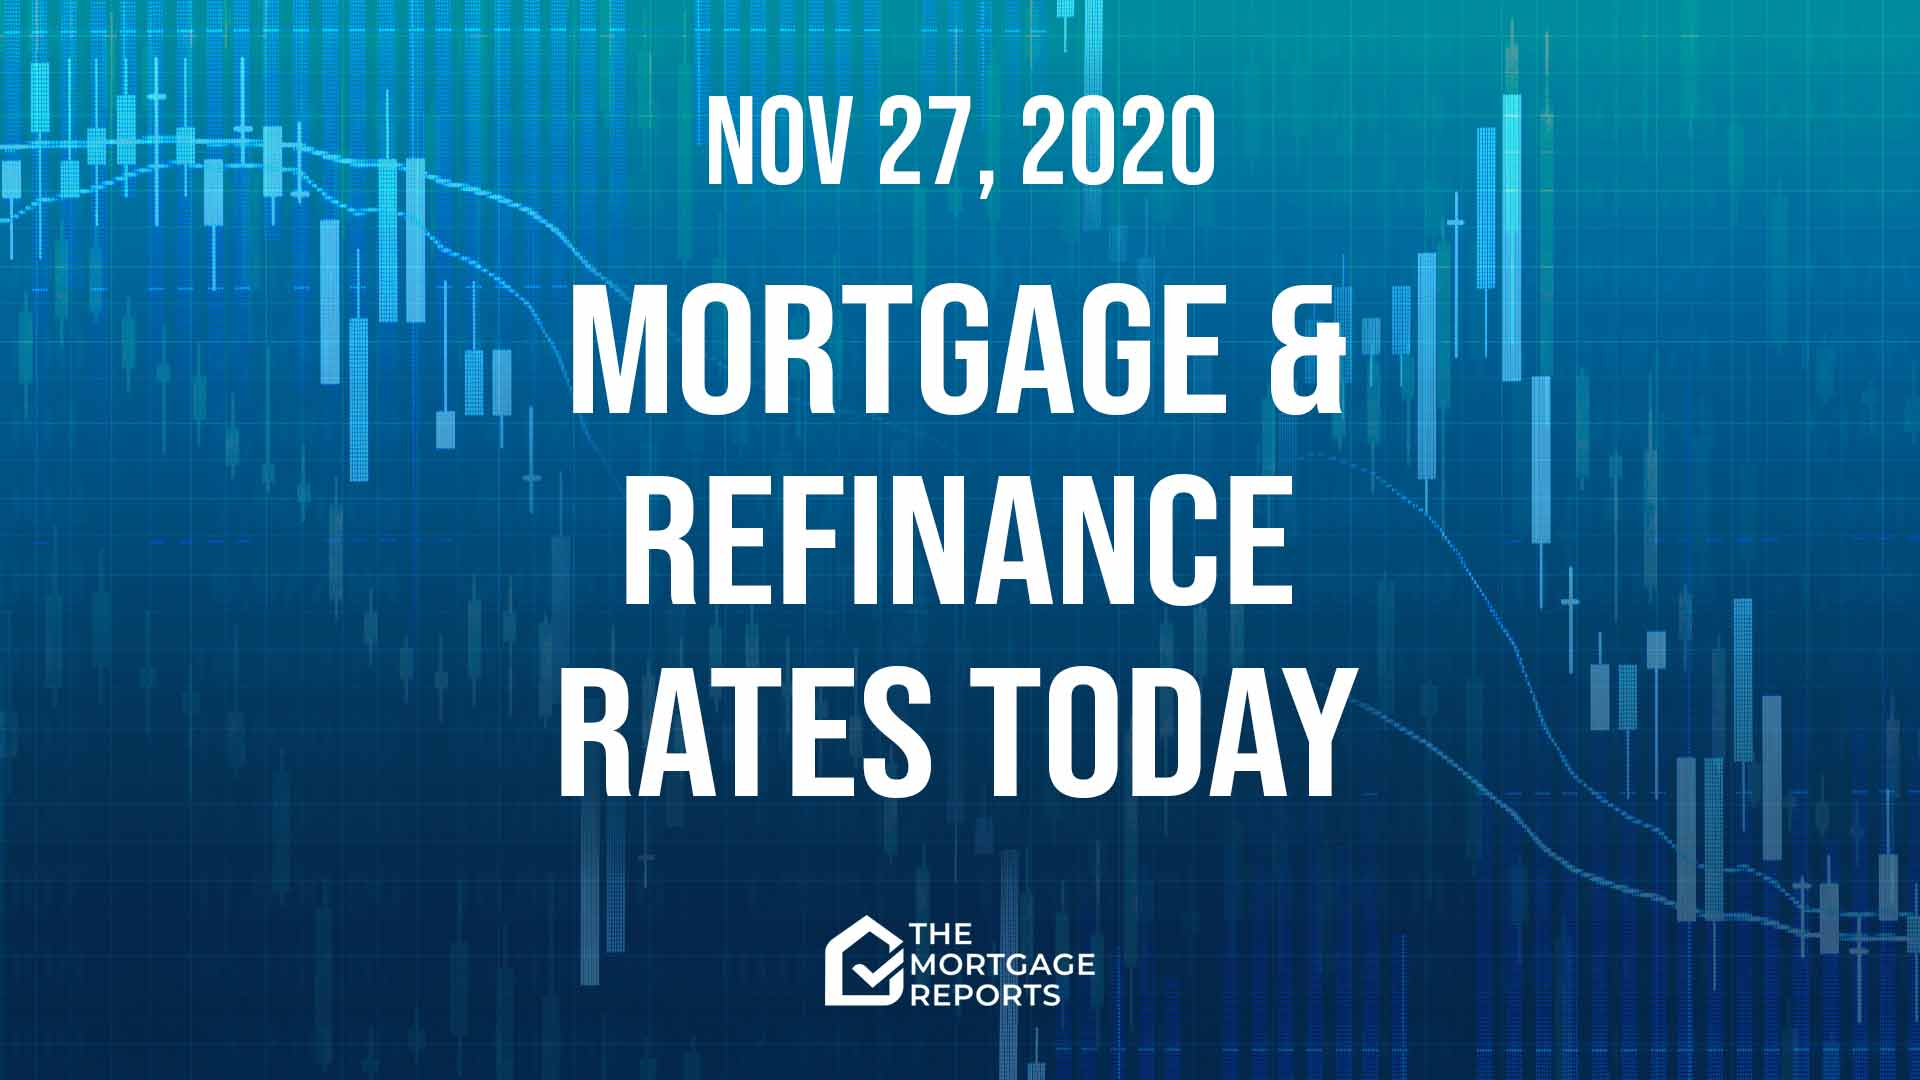 fha cash out refinance rates today